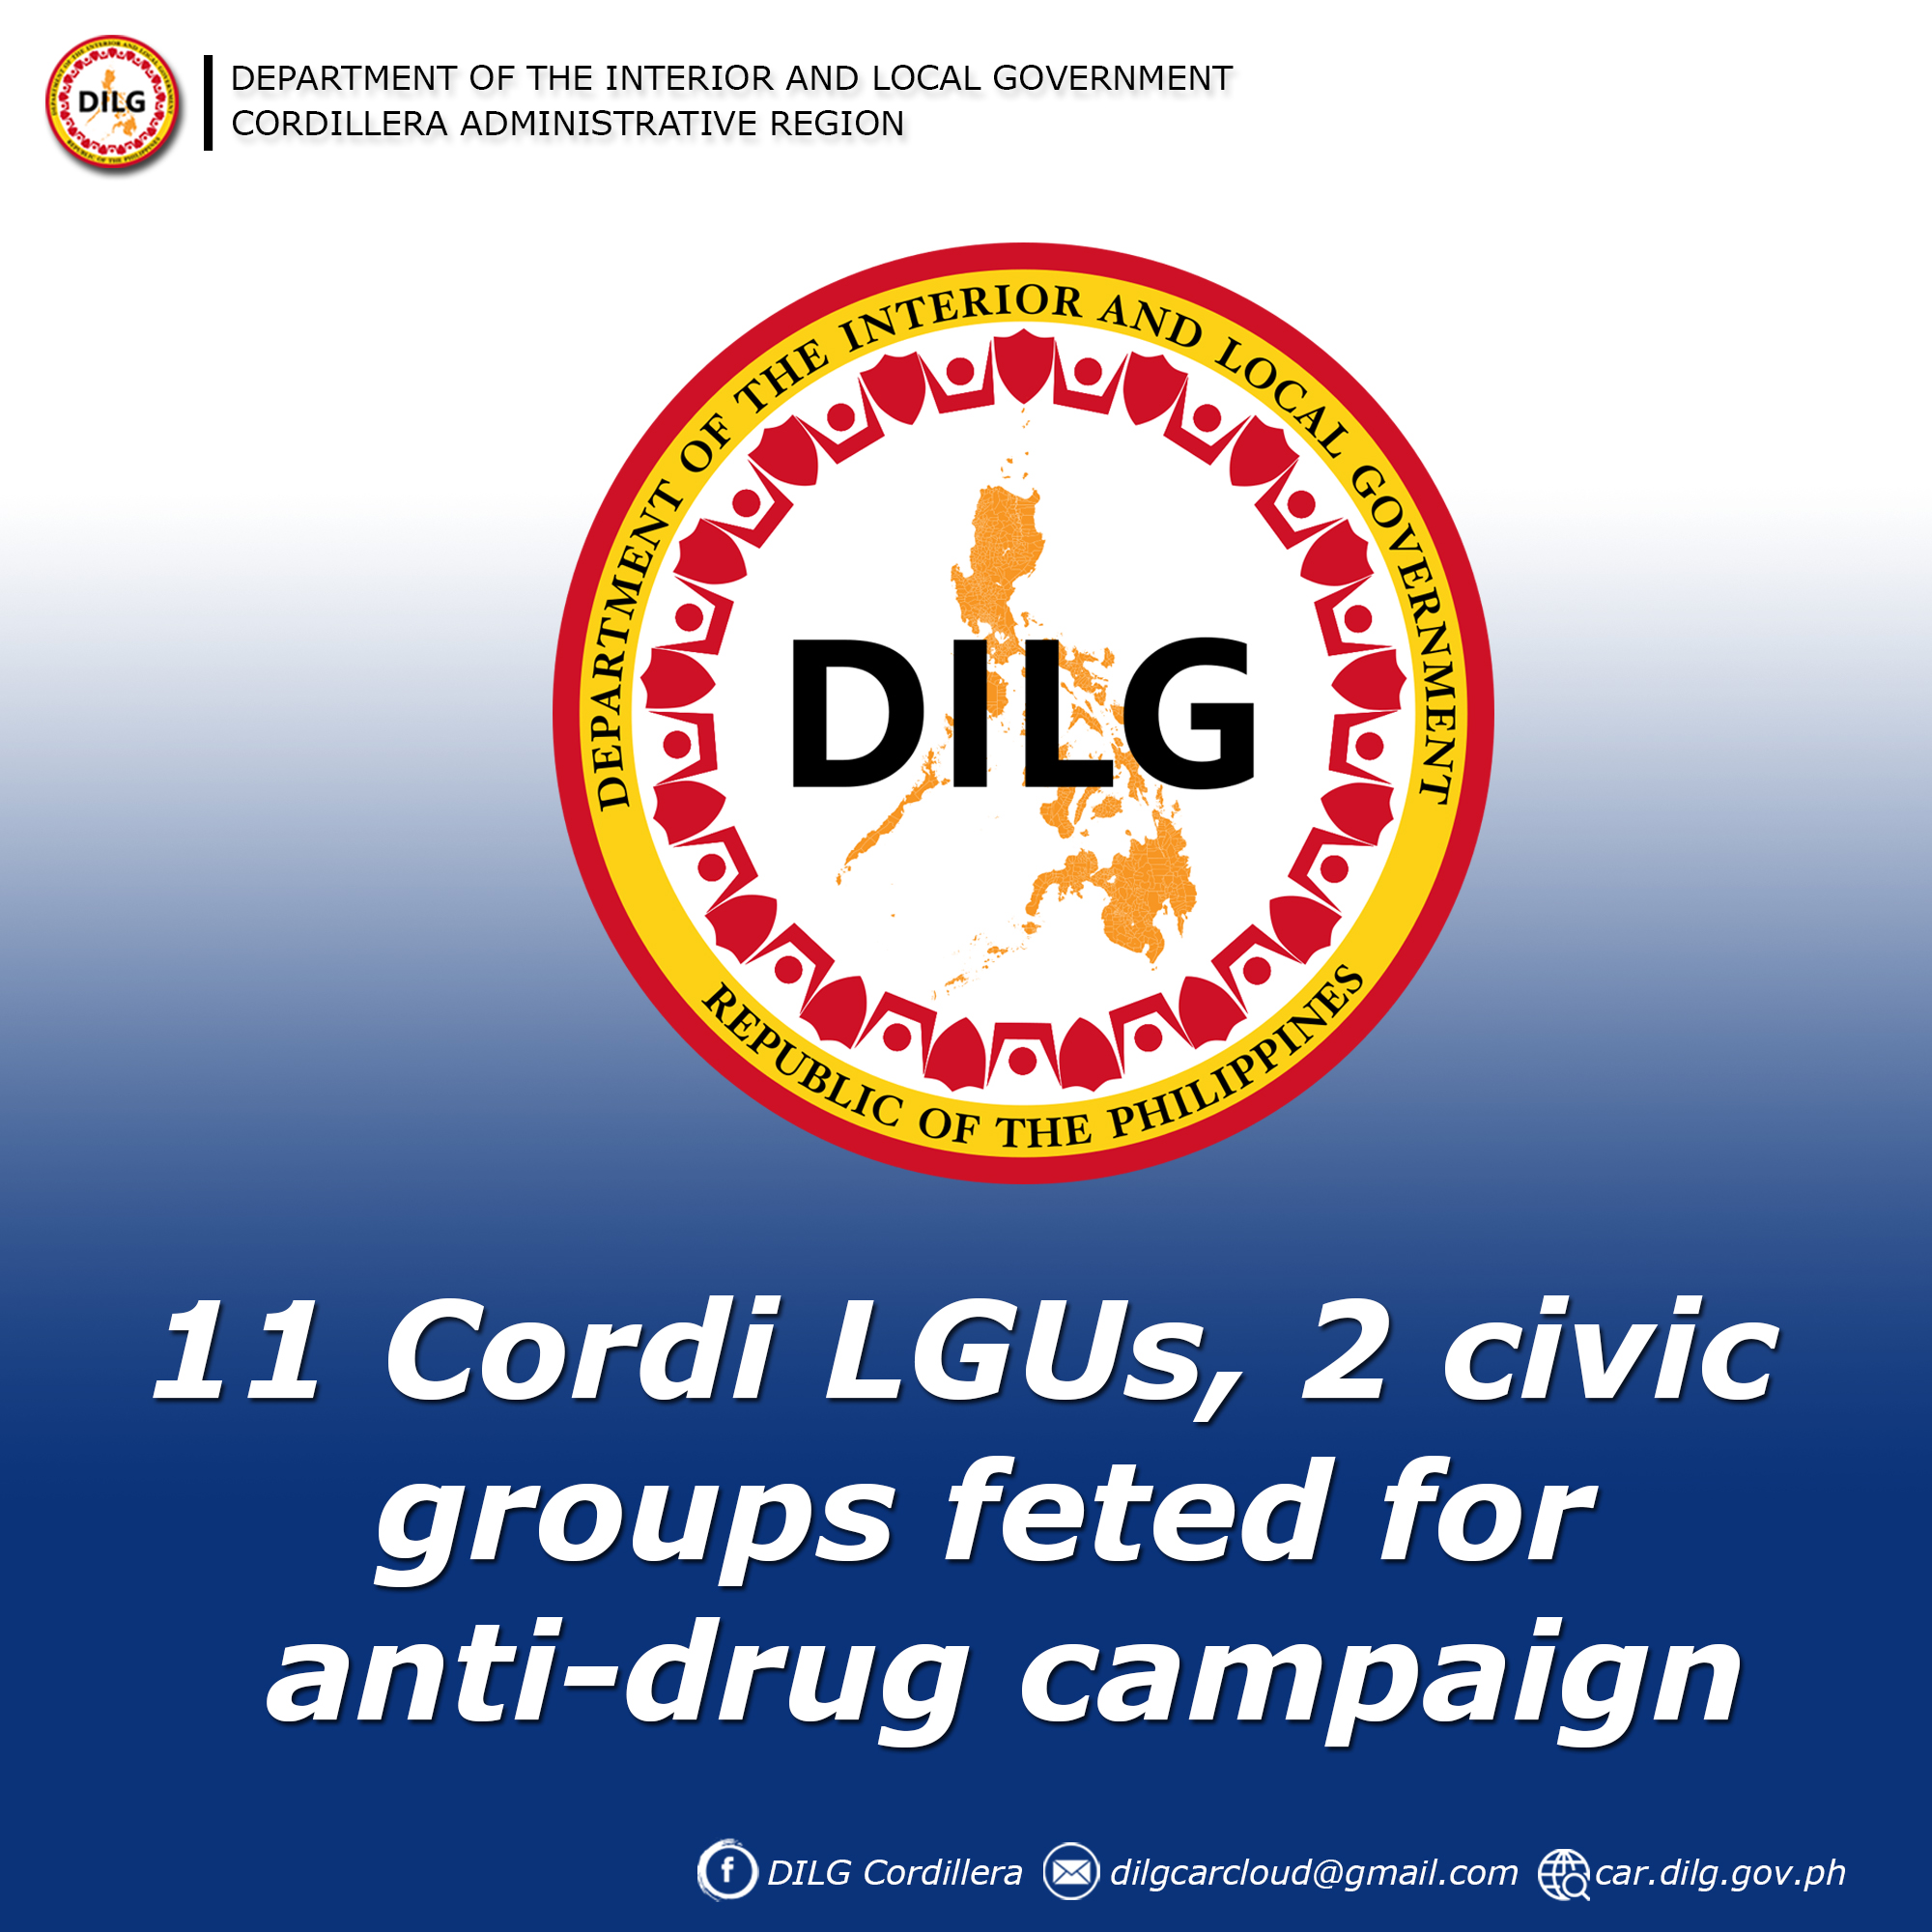 11 Cordi LGUs, 2 civic groups feted for anti-drug campaign